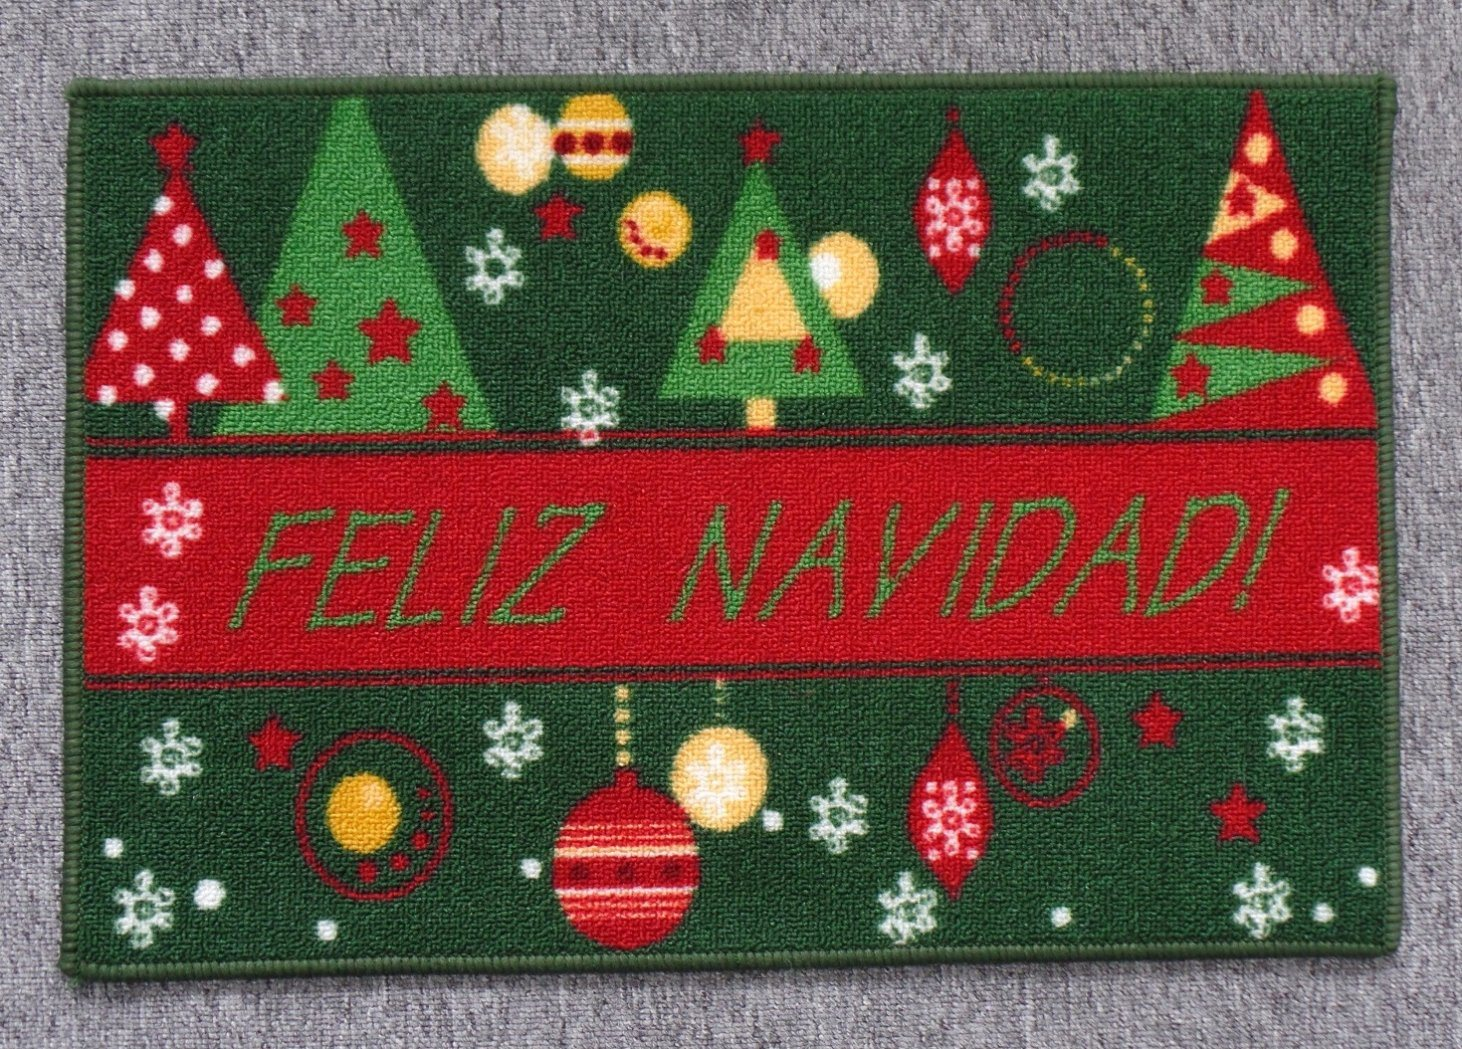 Nylon Rugs, with Christmas Patterns, #2